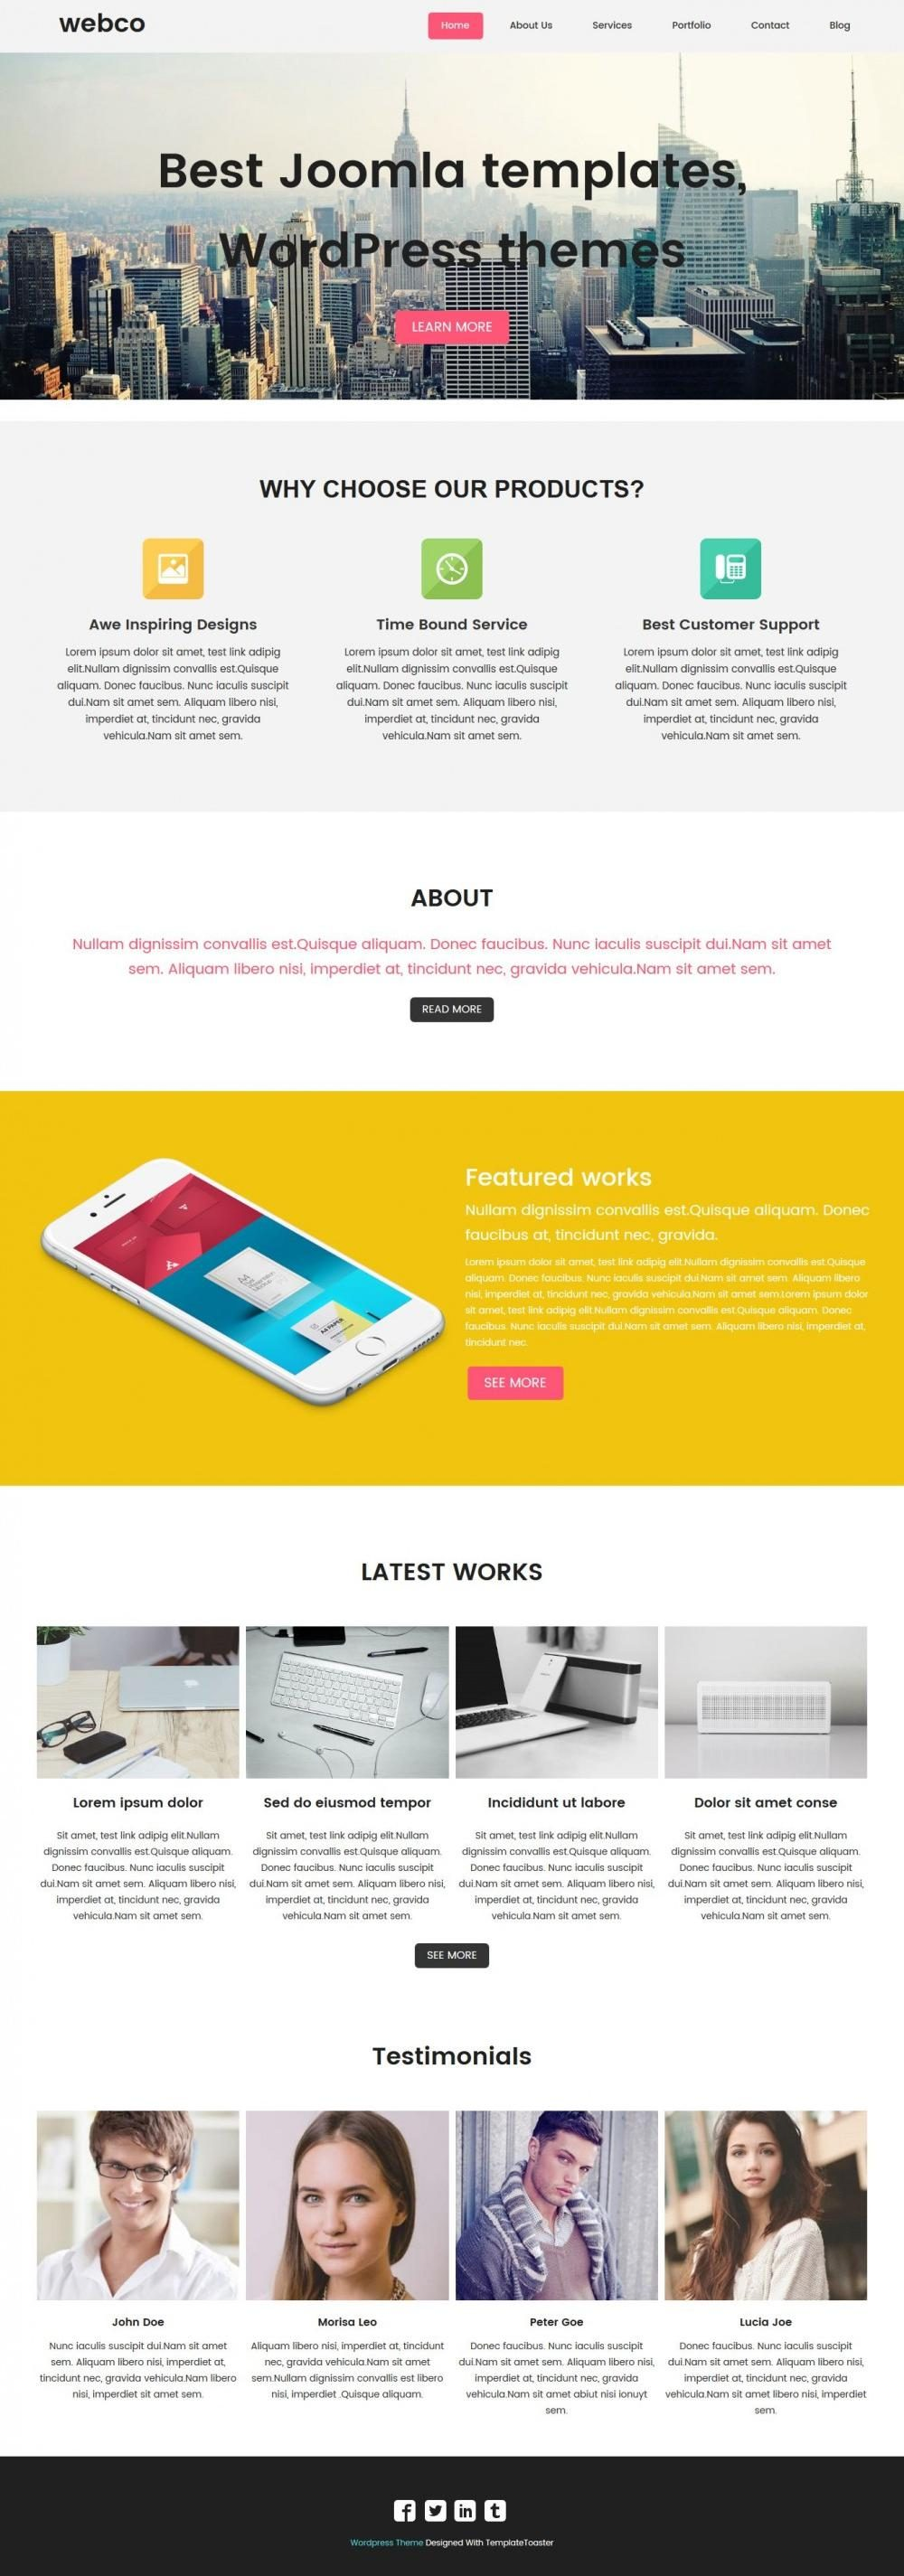 Webco - Joomla Template for Web Design Agencies